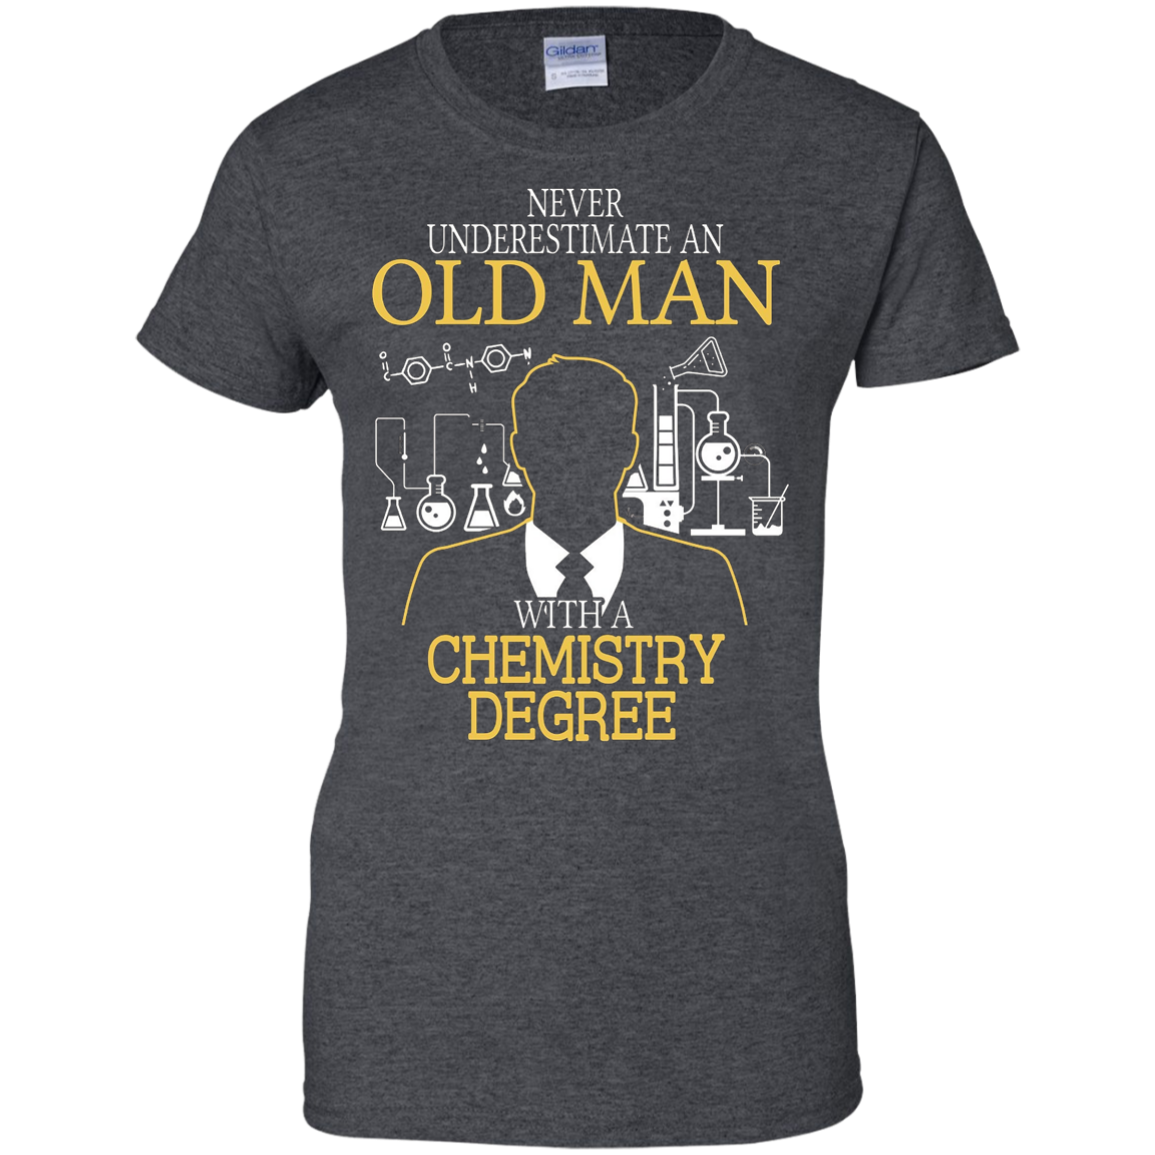 Chemistry shirt Old man with a Chemistry Degree T shirt